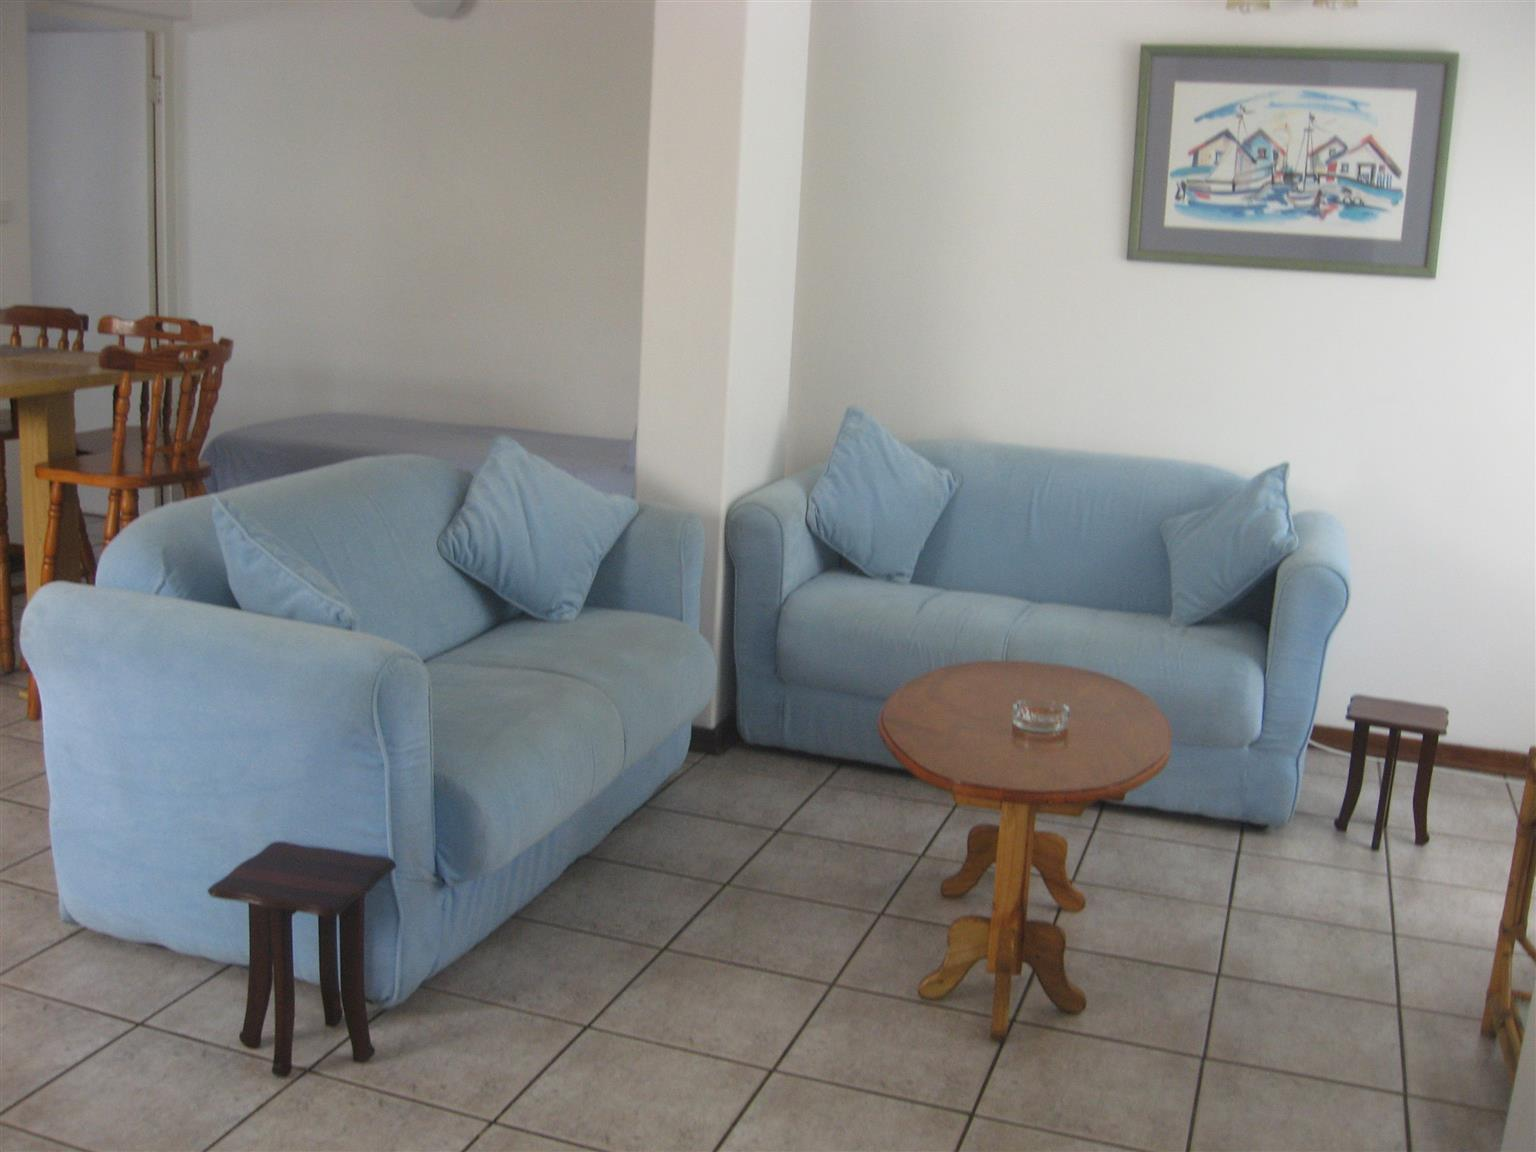 SPACIOUS 2 BEDROOM FURNISHED FLAT FROM R2500 PER WEEK SHELLY BEACH, UVONGO, ST MICHAELS-ON-SEA